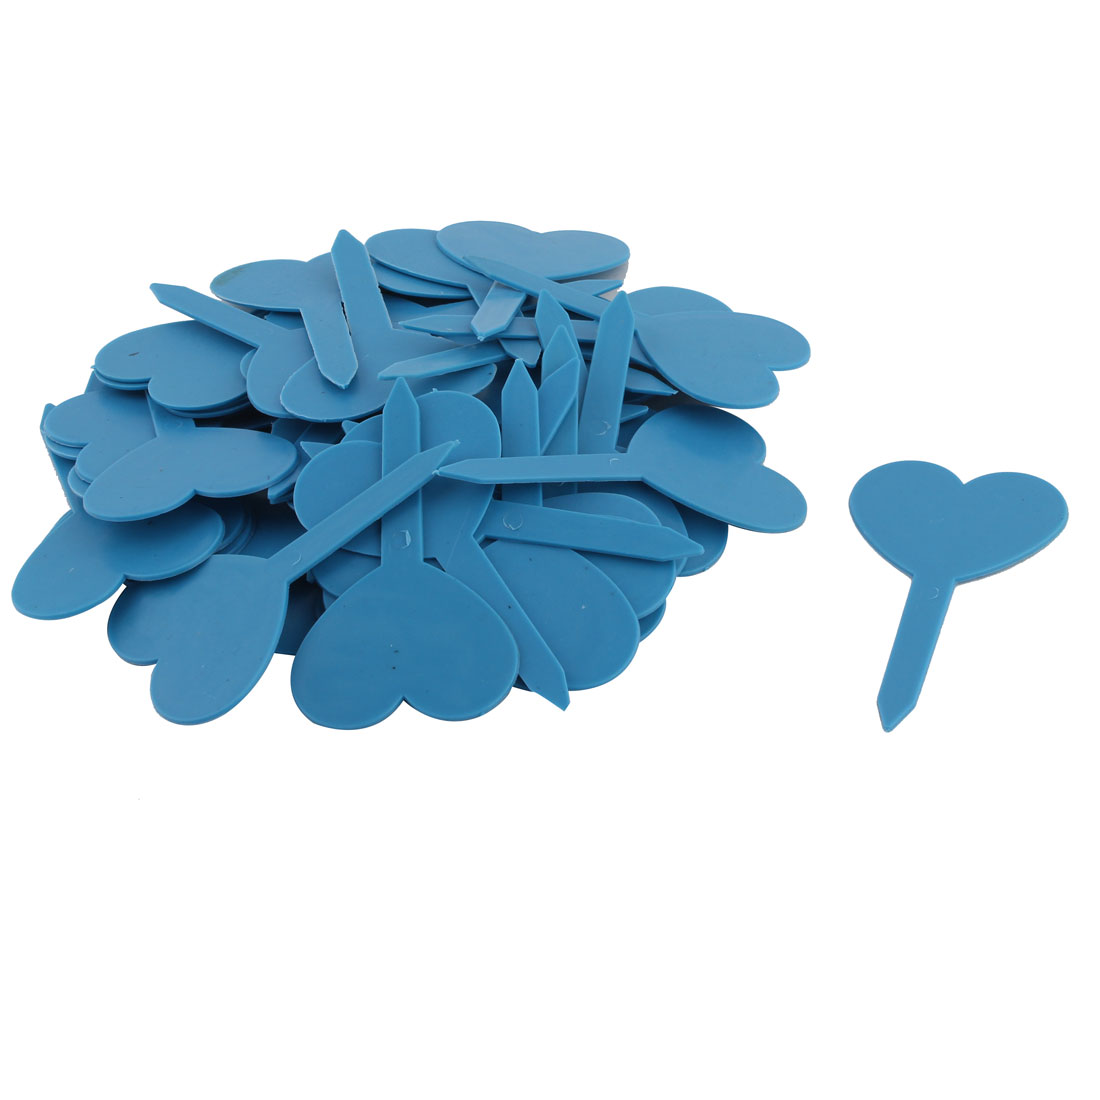 Household Garden Plastic Heart Shaped Plant Seed Tag Label Marker Blue 50pcs